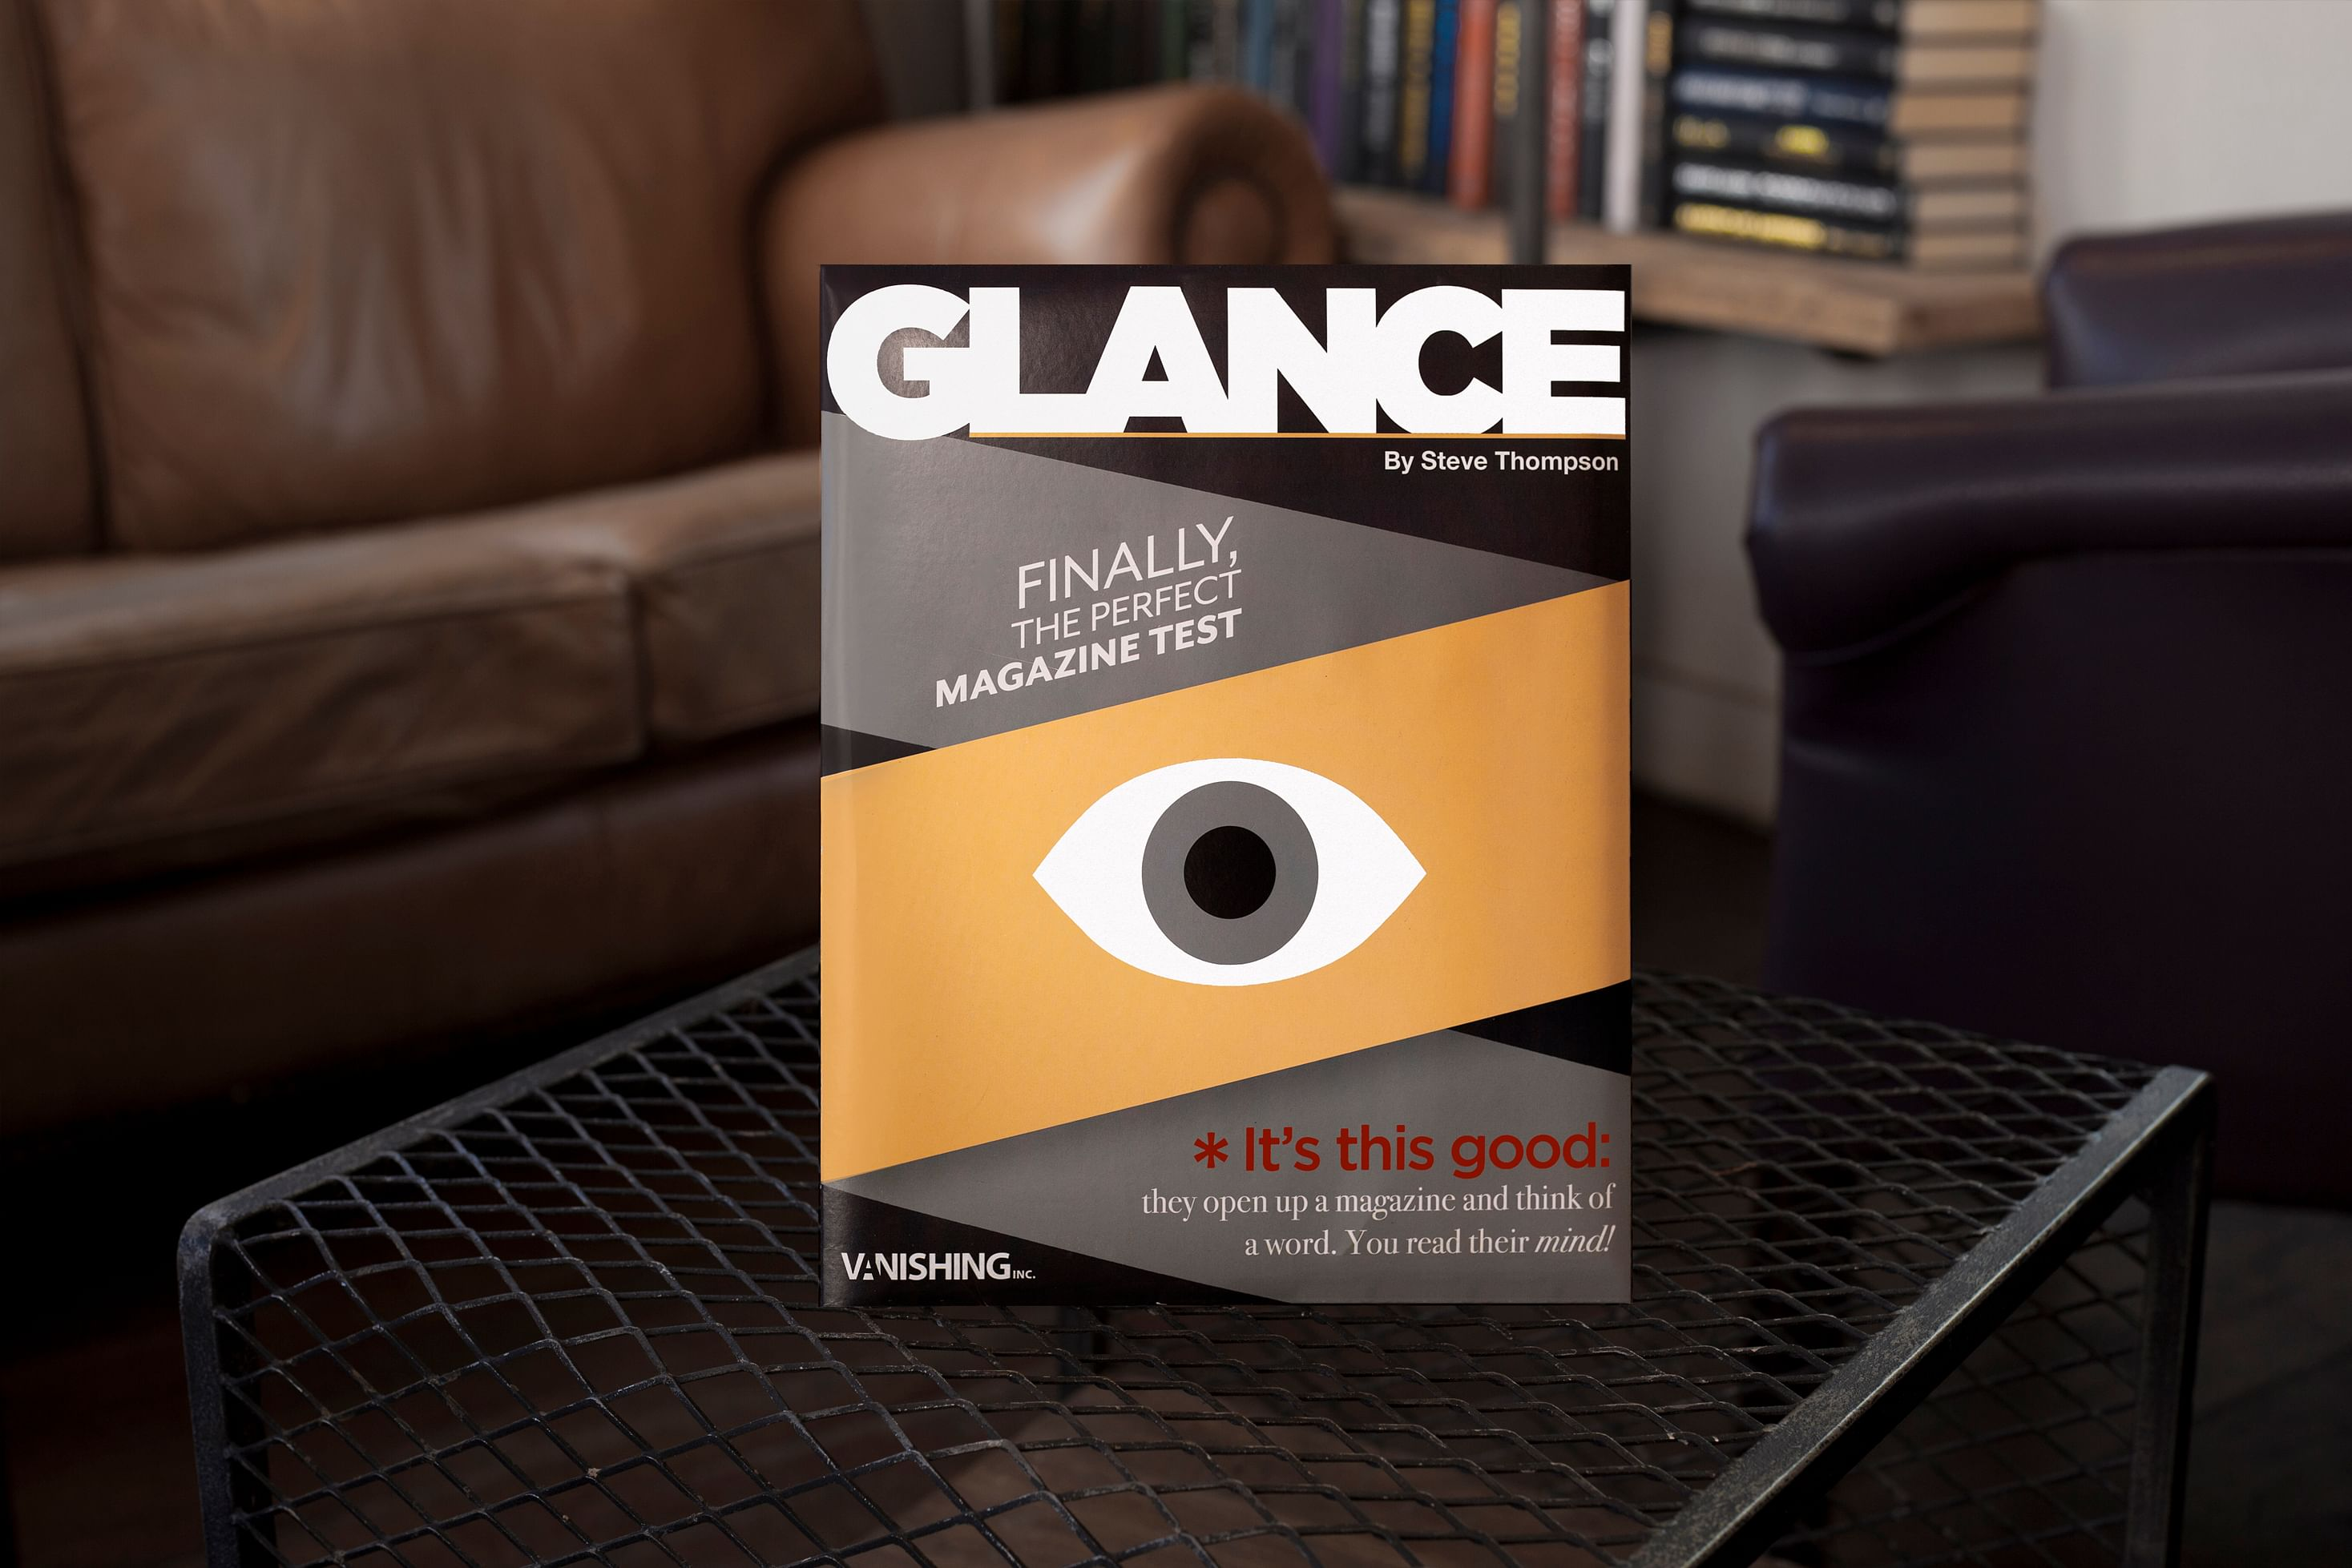 Glance: Updated Edition - magic